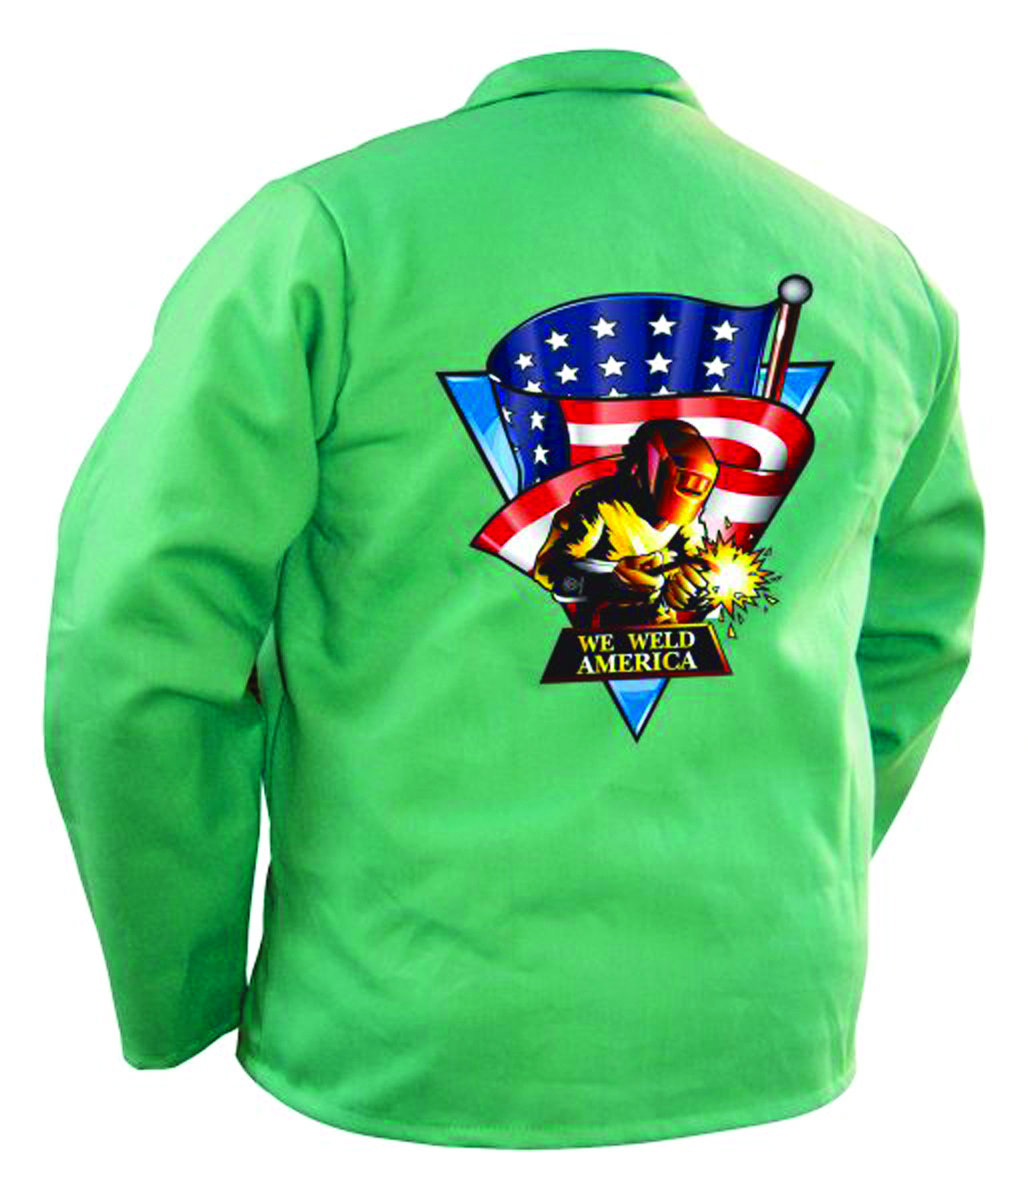 9030L - We Weld America Screen Print Green Jacket-Large-Flame-Retardant Cotton Jackets----UOM: 1/EA